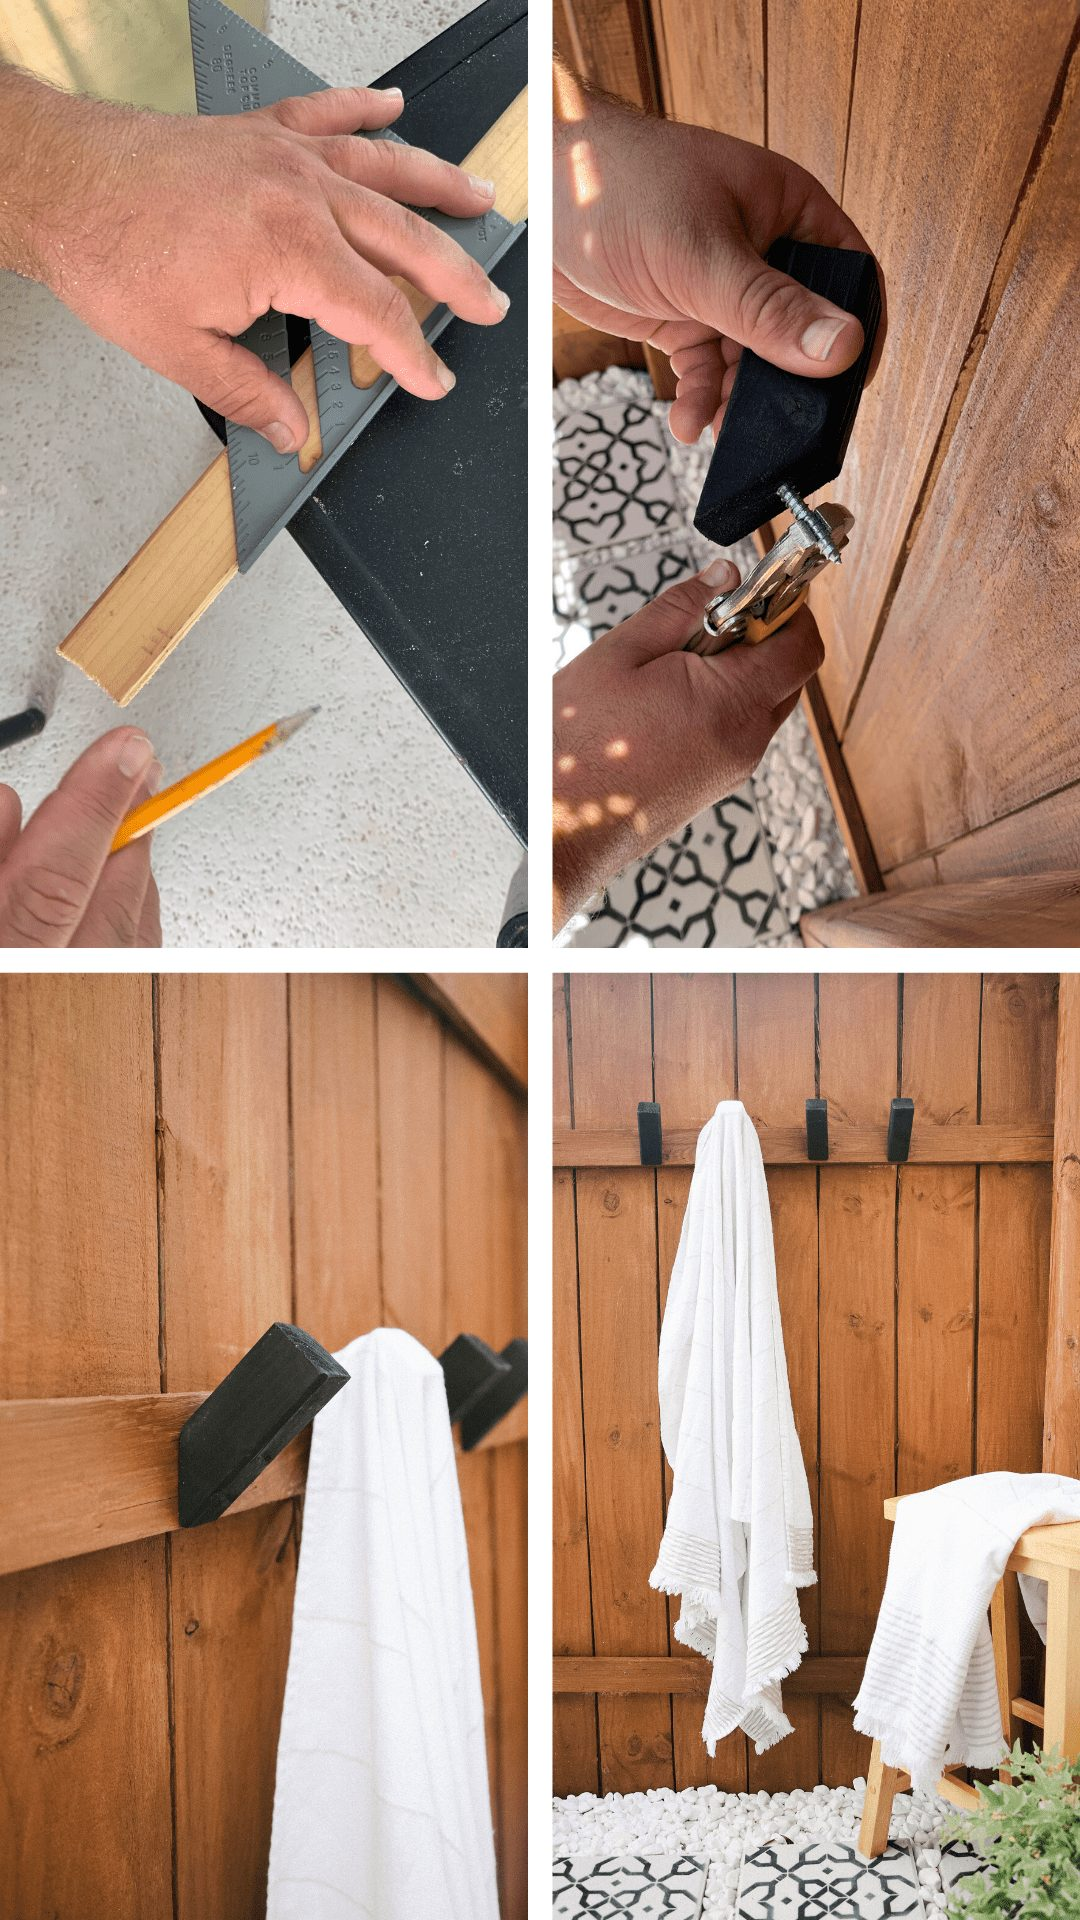 Top US lifestyle blogger Tabitha Blue shares How to Make Modern DIY Wooden Hooks for $1 Each! See the sleek wood hook design in her outdoor shower. | Wooden Hooks by popular Florida lifestyle blog, Fresh Mommy Blog: image of a white towel hanging on a wood hook that's mounted in a outdoor shower